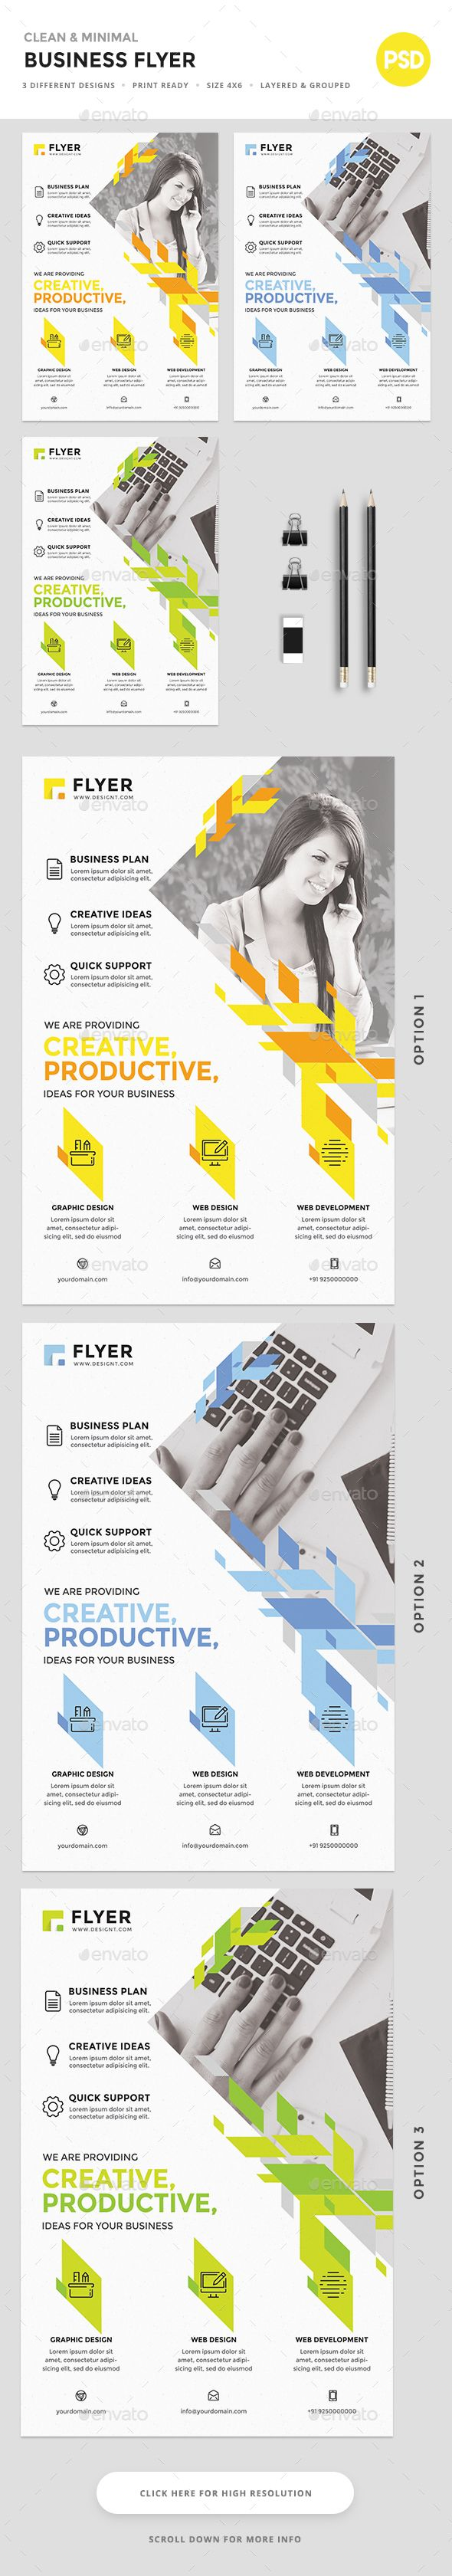 9 best posters conferencias images on pinterest poster posters